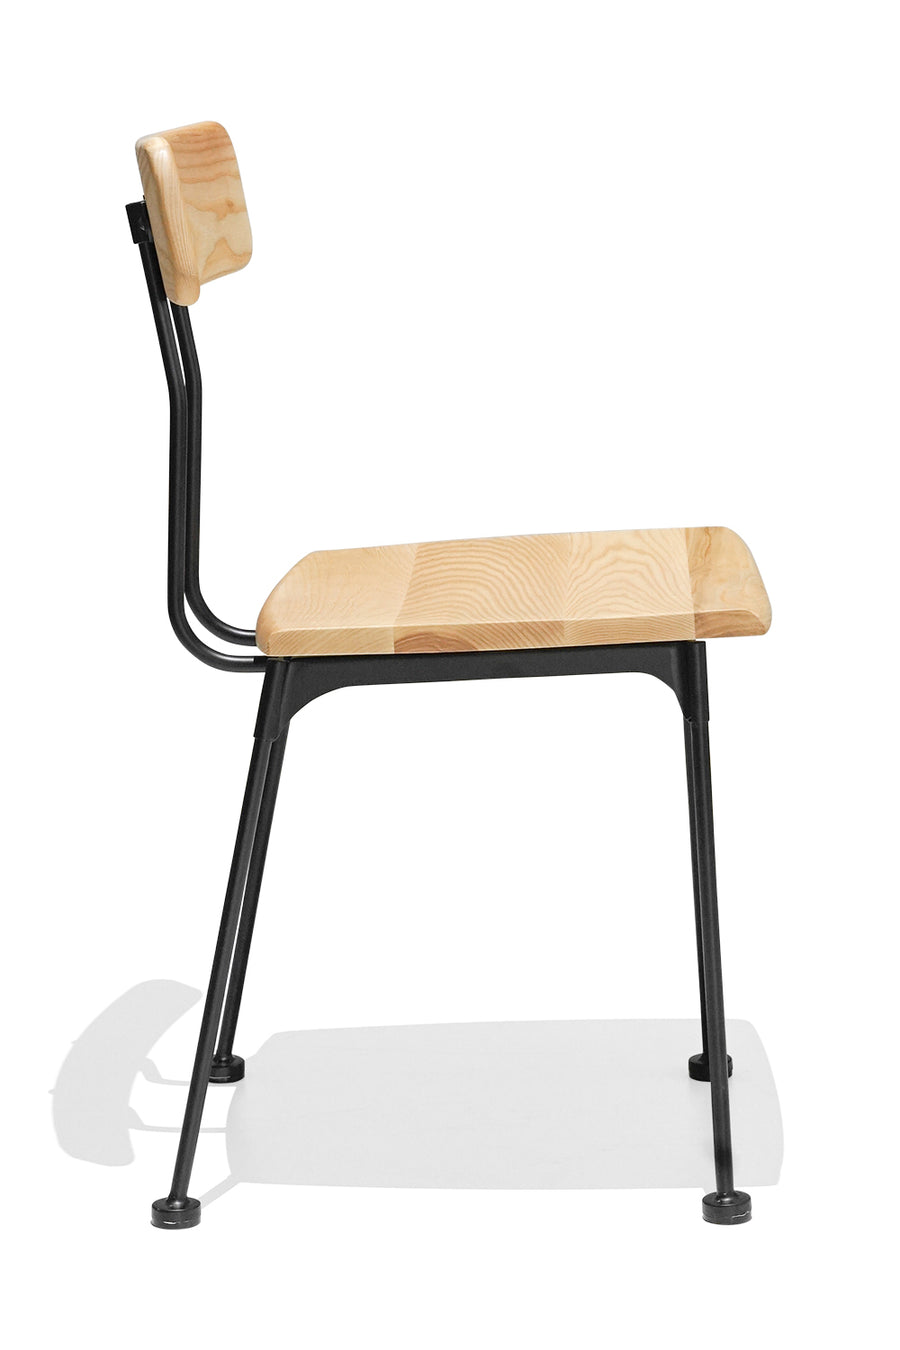 HUBERT chair